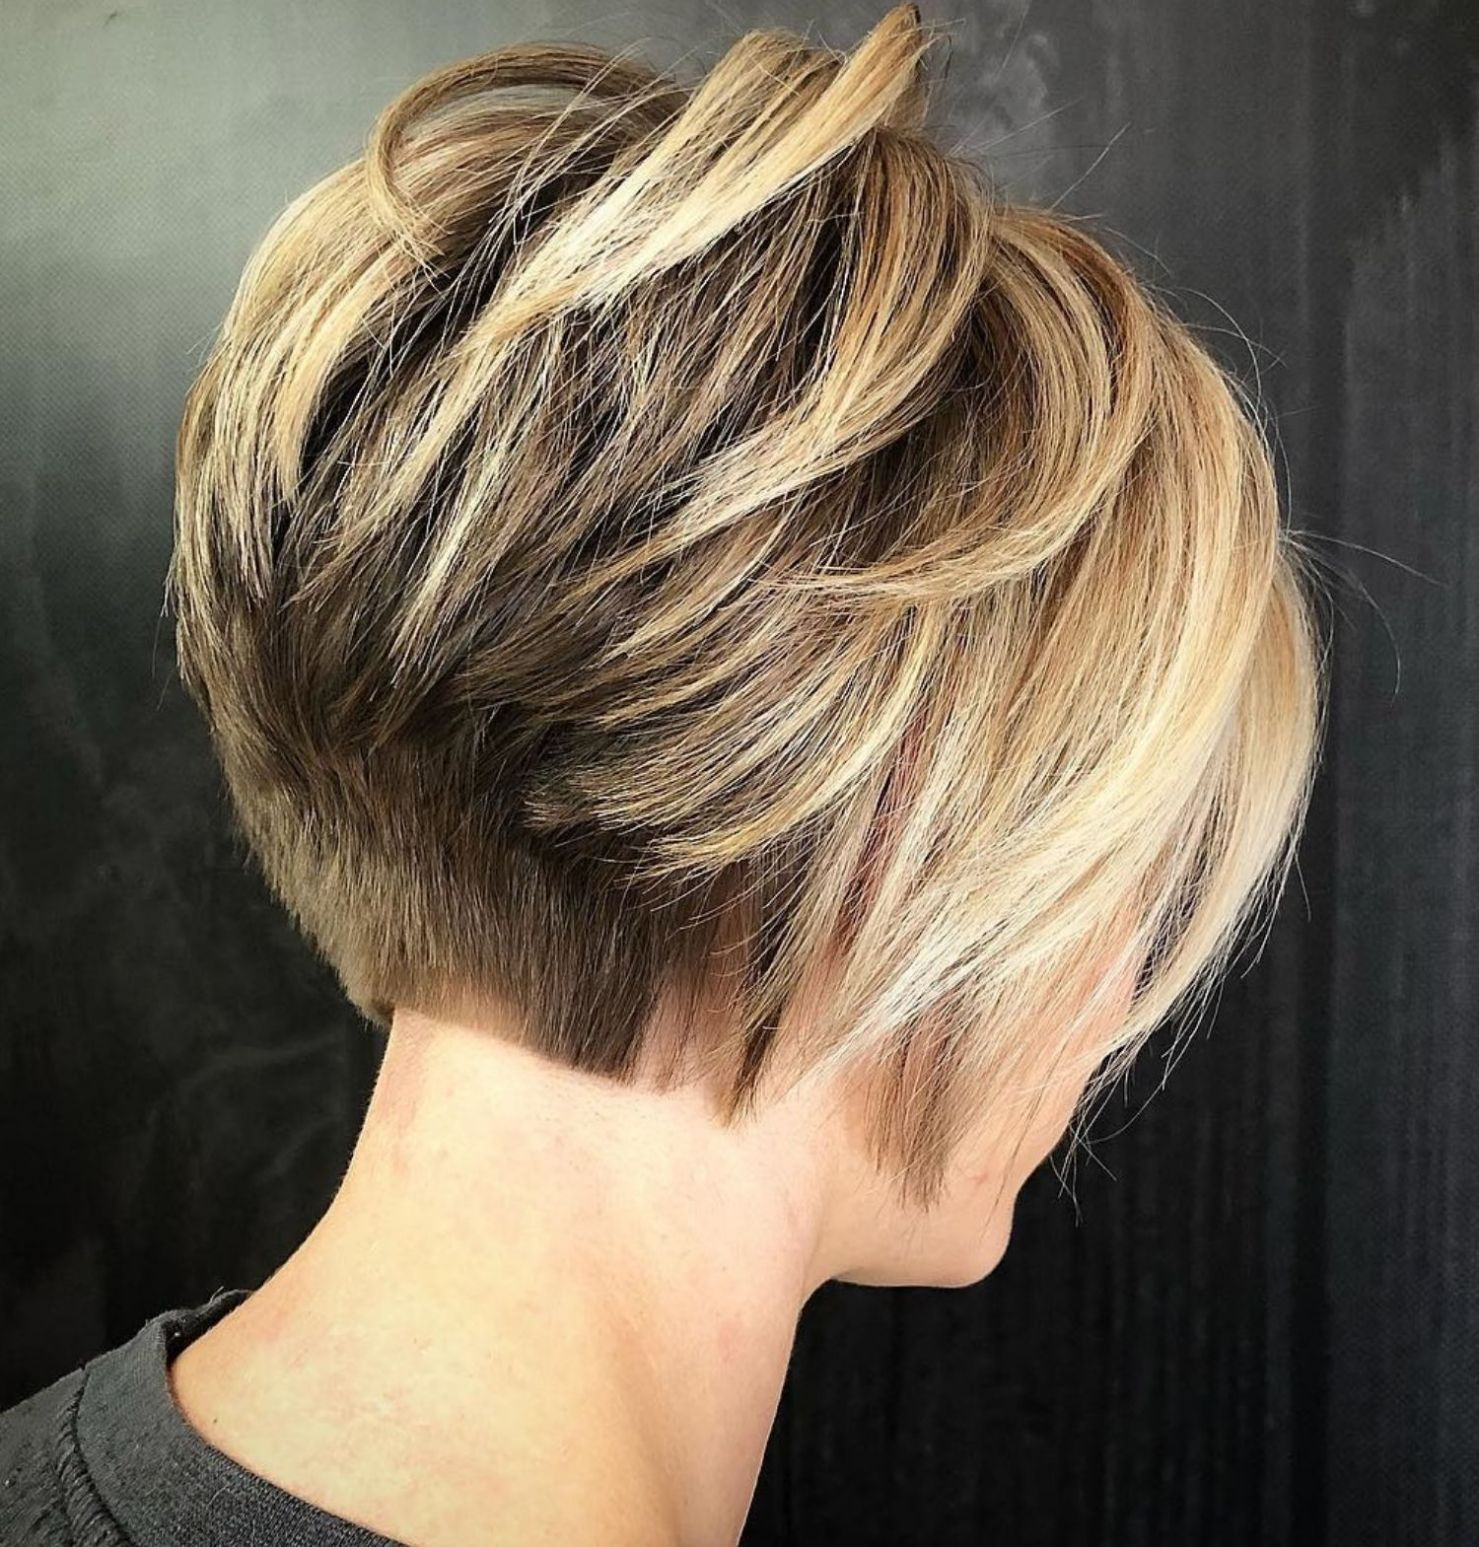 Short Stacked Bronde Bob For Thick Hair Haircut For Thick Hair Thick Hair Styles Short Hairstyles For Thick Hair